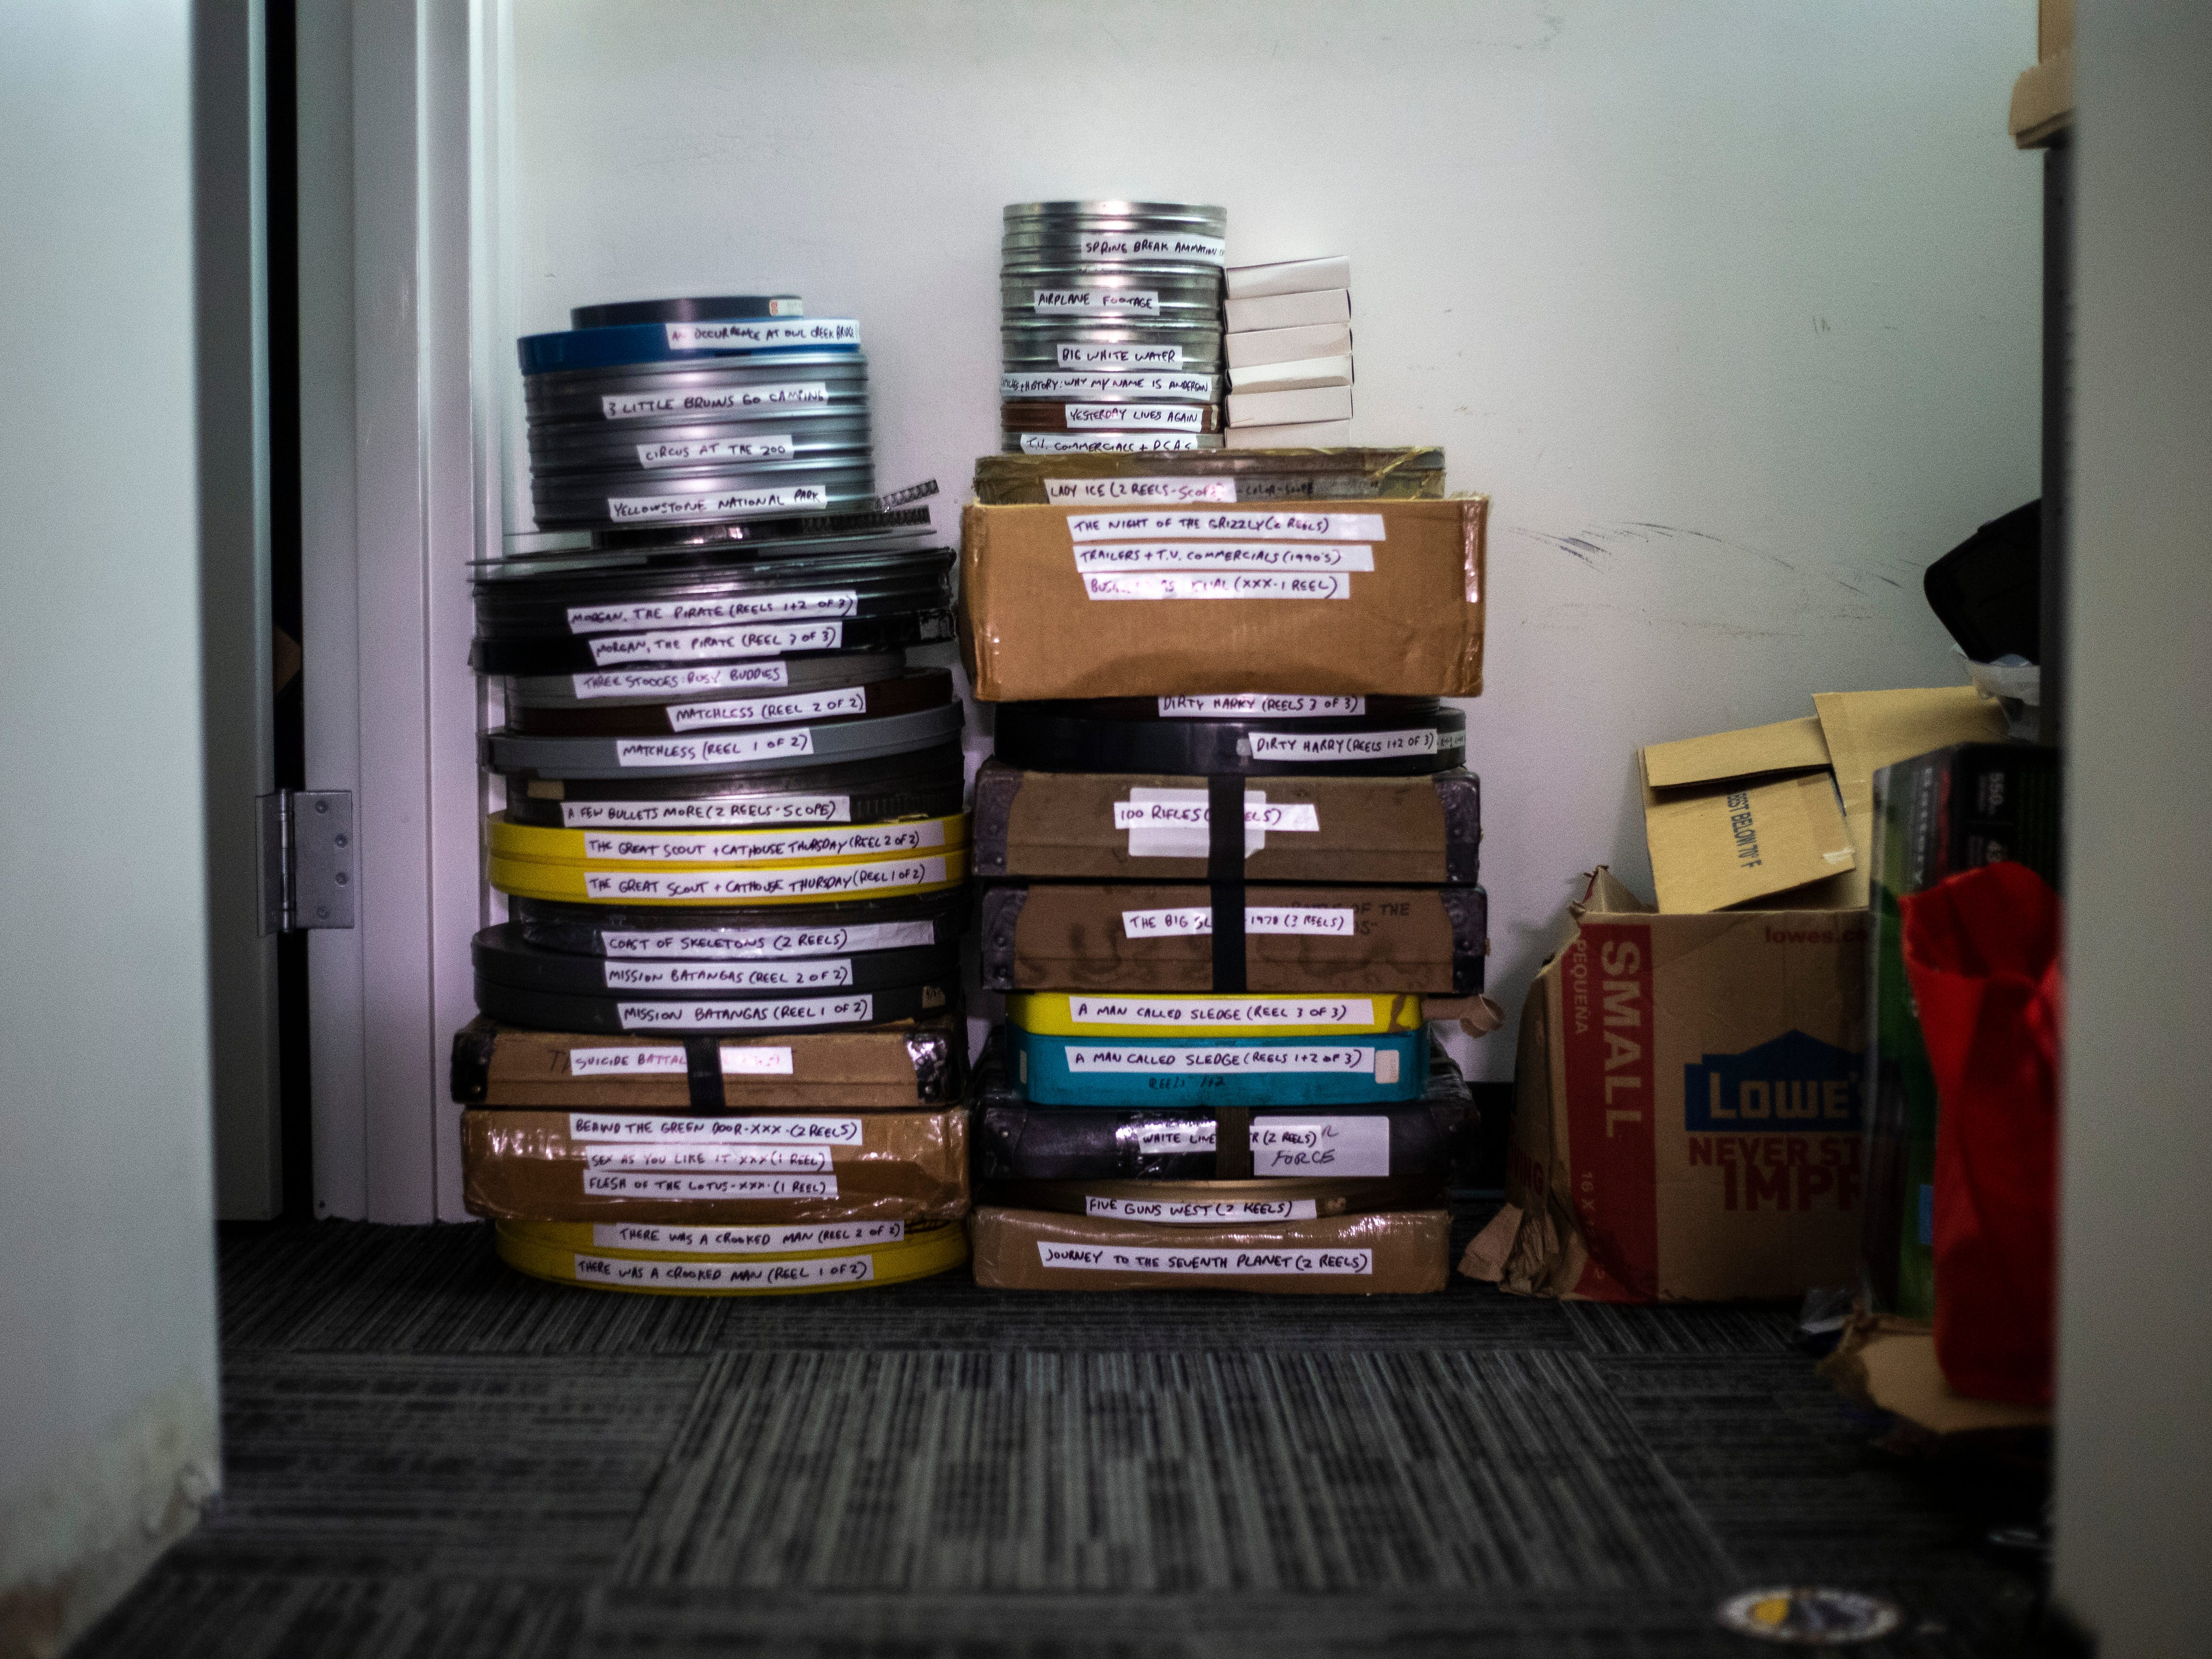 """Rolls of film get packed up outside the projection room during a """"Late Shift at the Grindhouse"""" movie screening, Wednesday, April 17, 2019, at FilmScene in Iowa City, Iowa."""